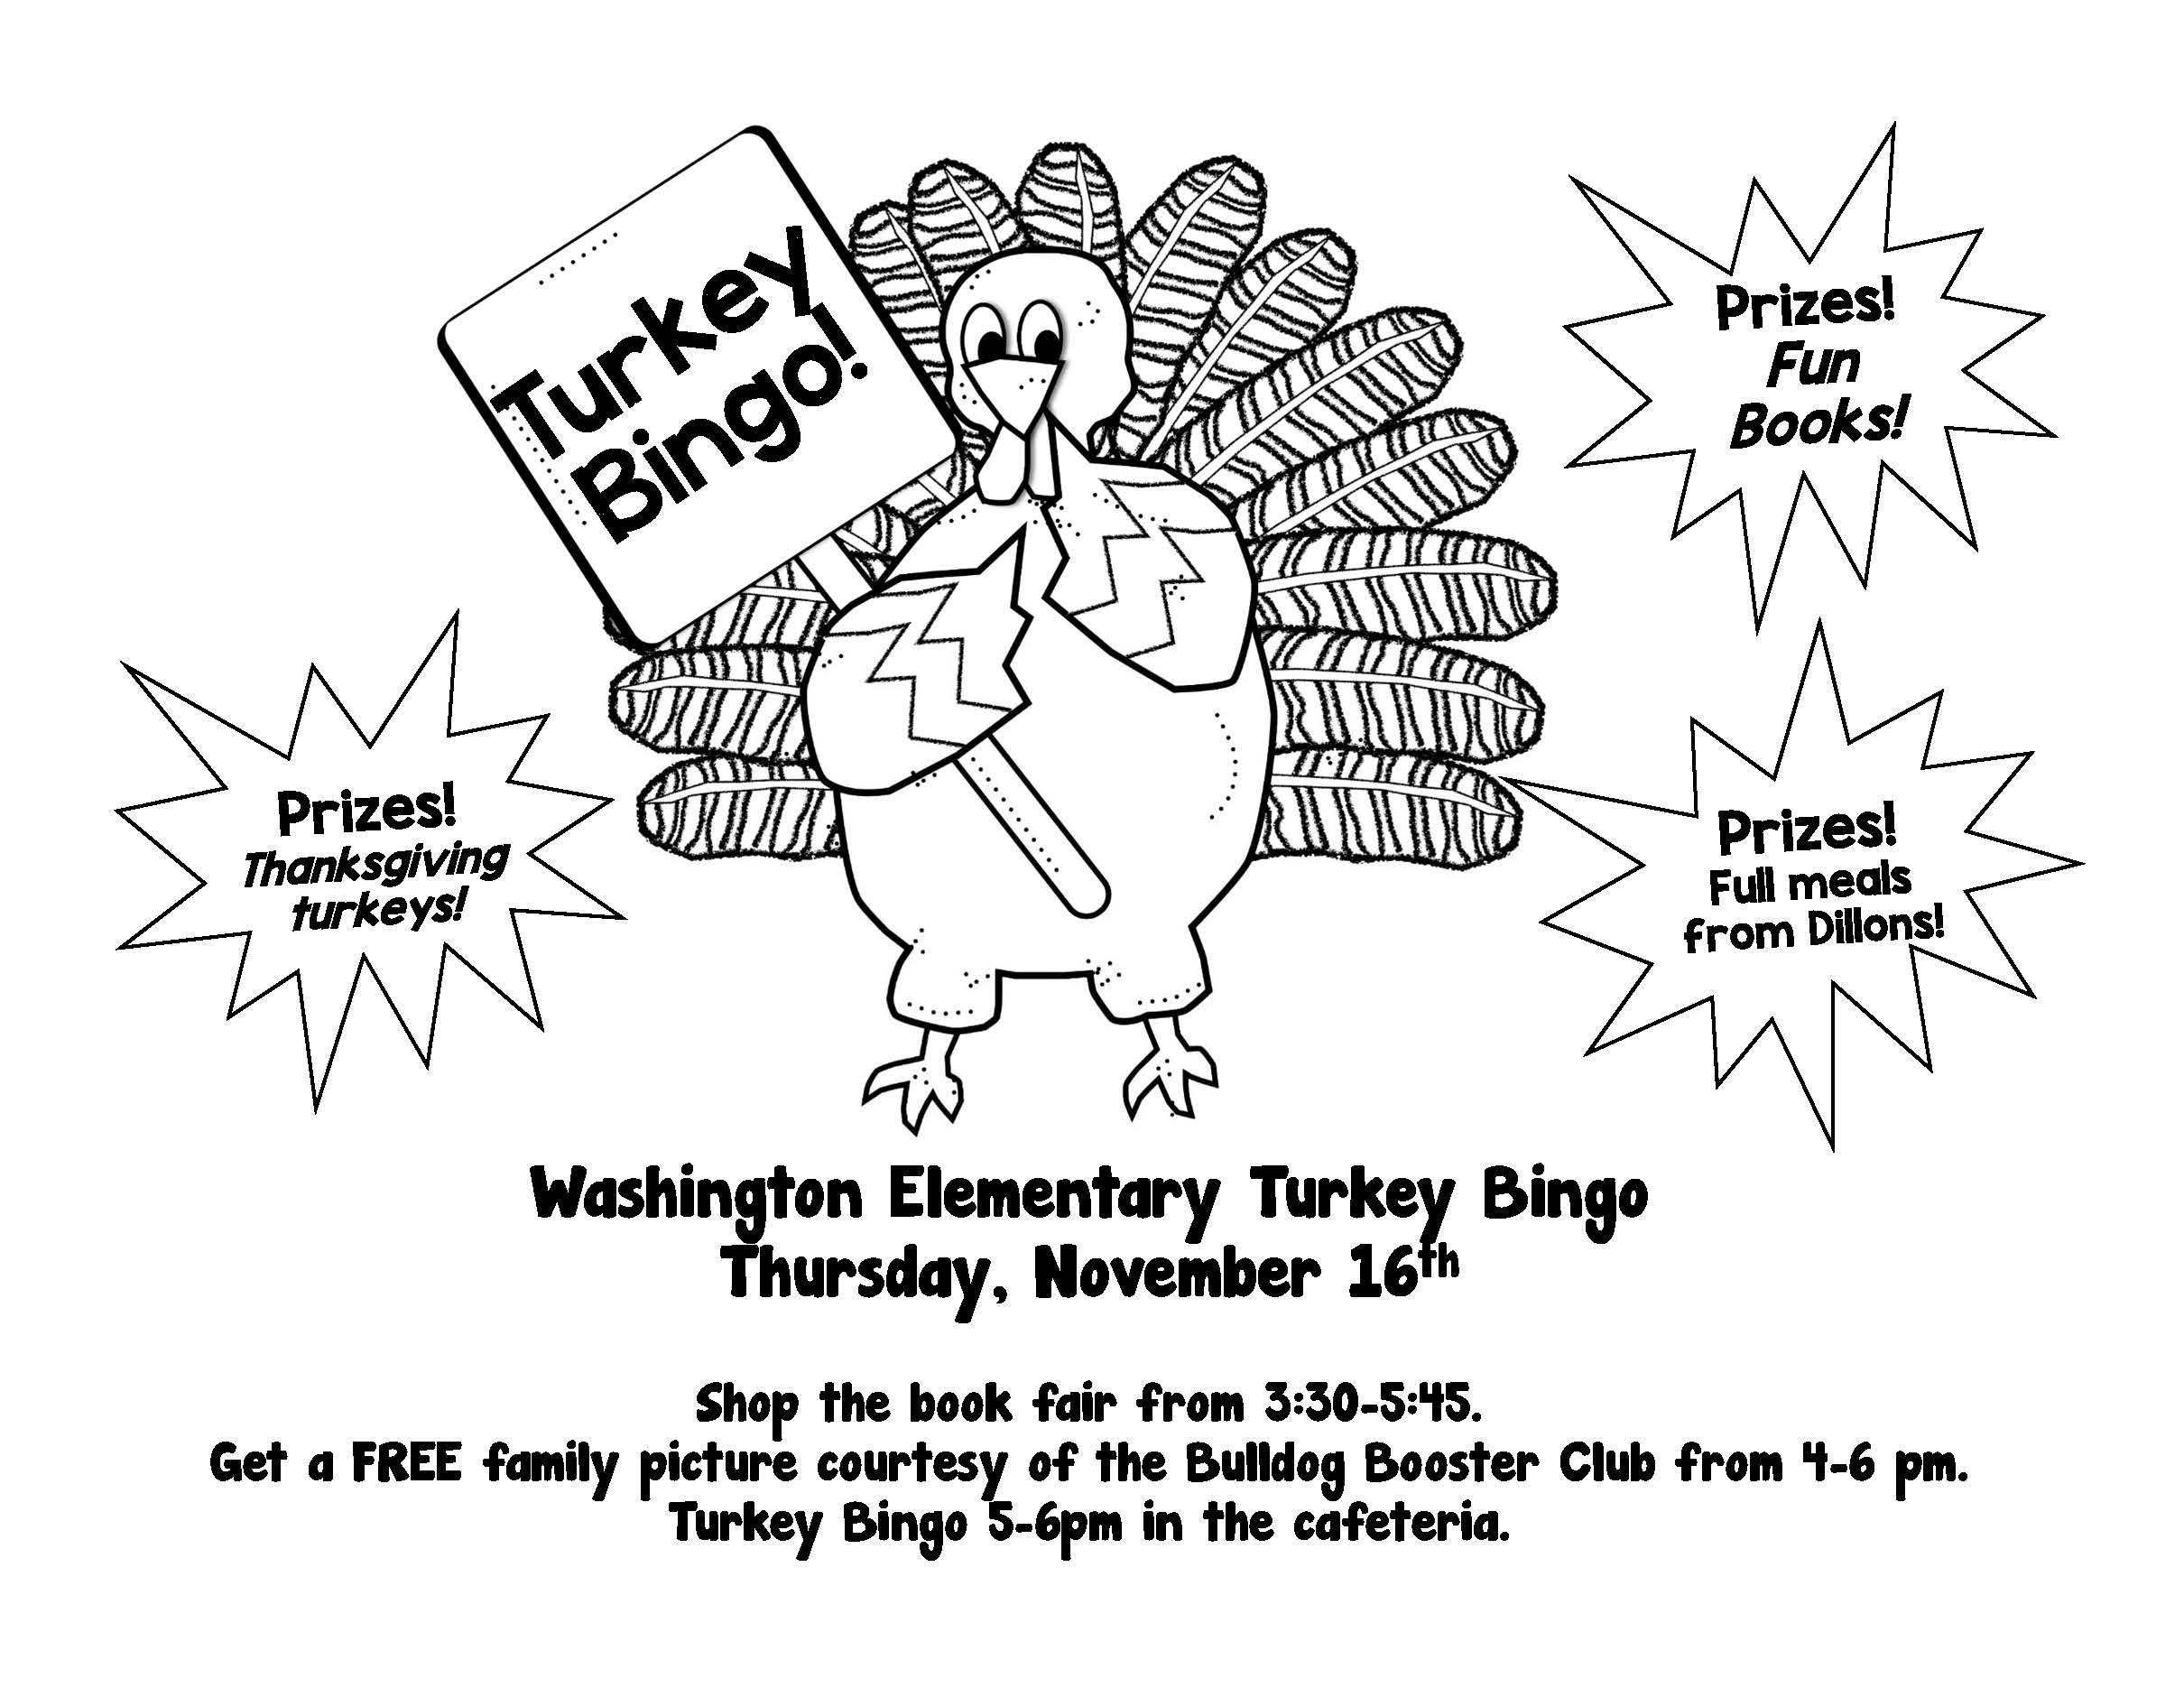 Washington Elementary Turkey Bingo